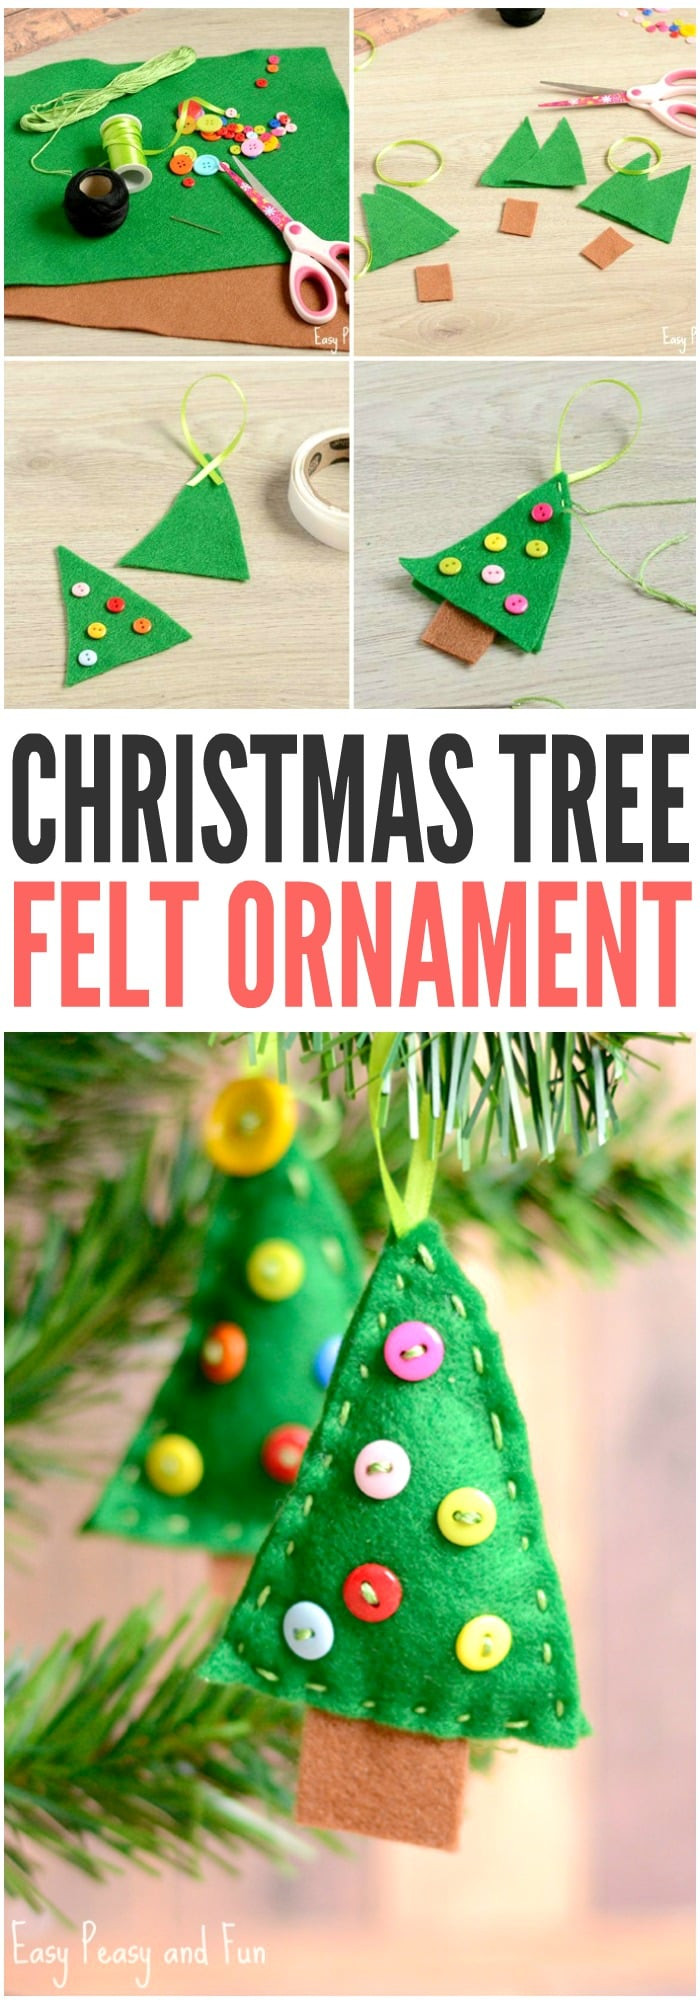 Christmas Tree ornaments to Make Beautiful Felt Christmas Tree ornament Easy Peasy and Fun Of Amazing 45 Images Christmas Tree ornaments to Make